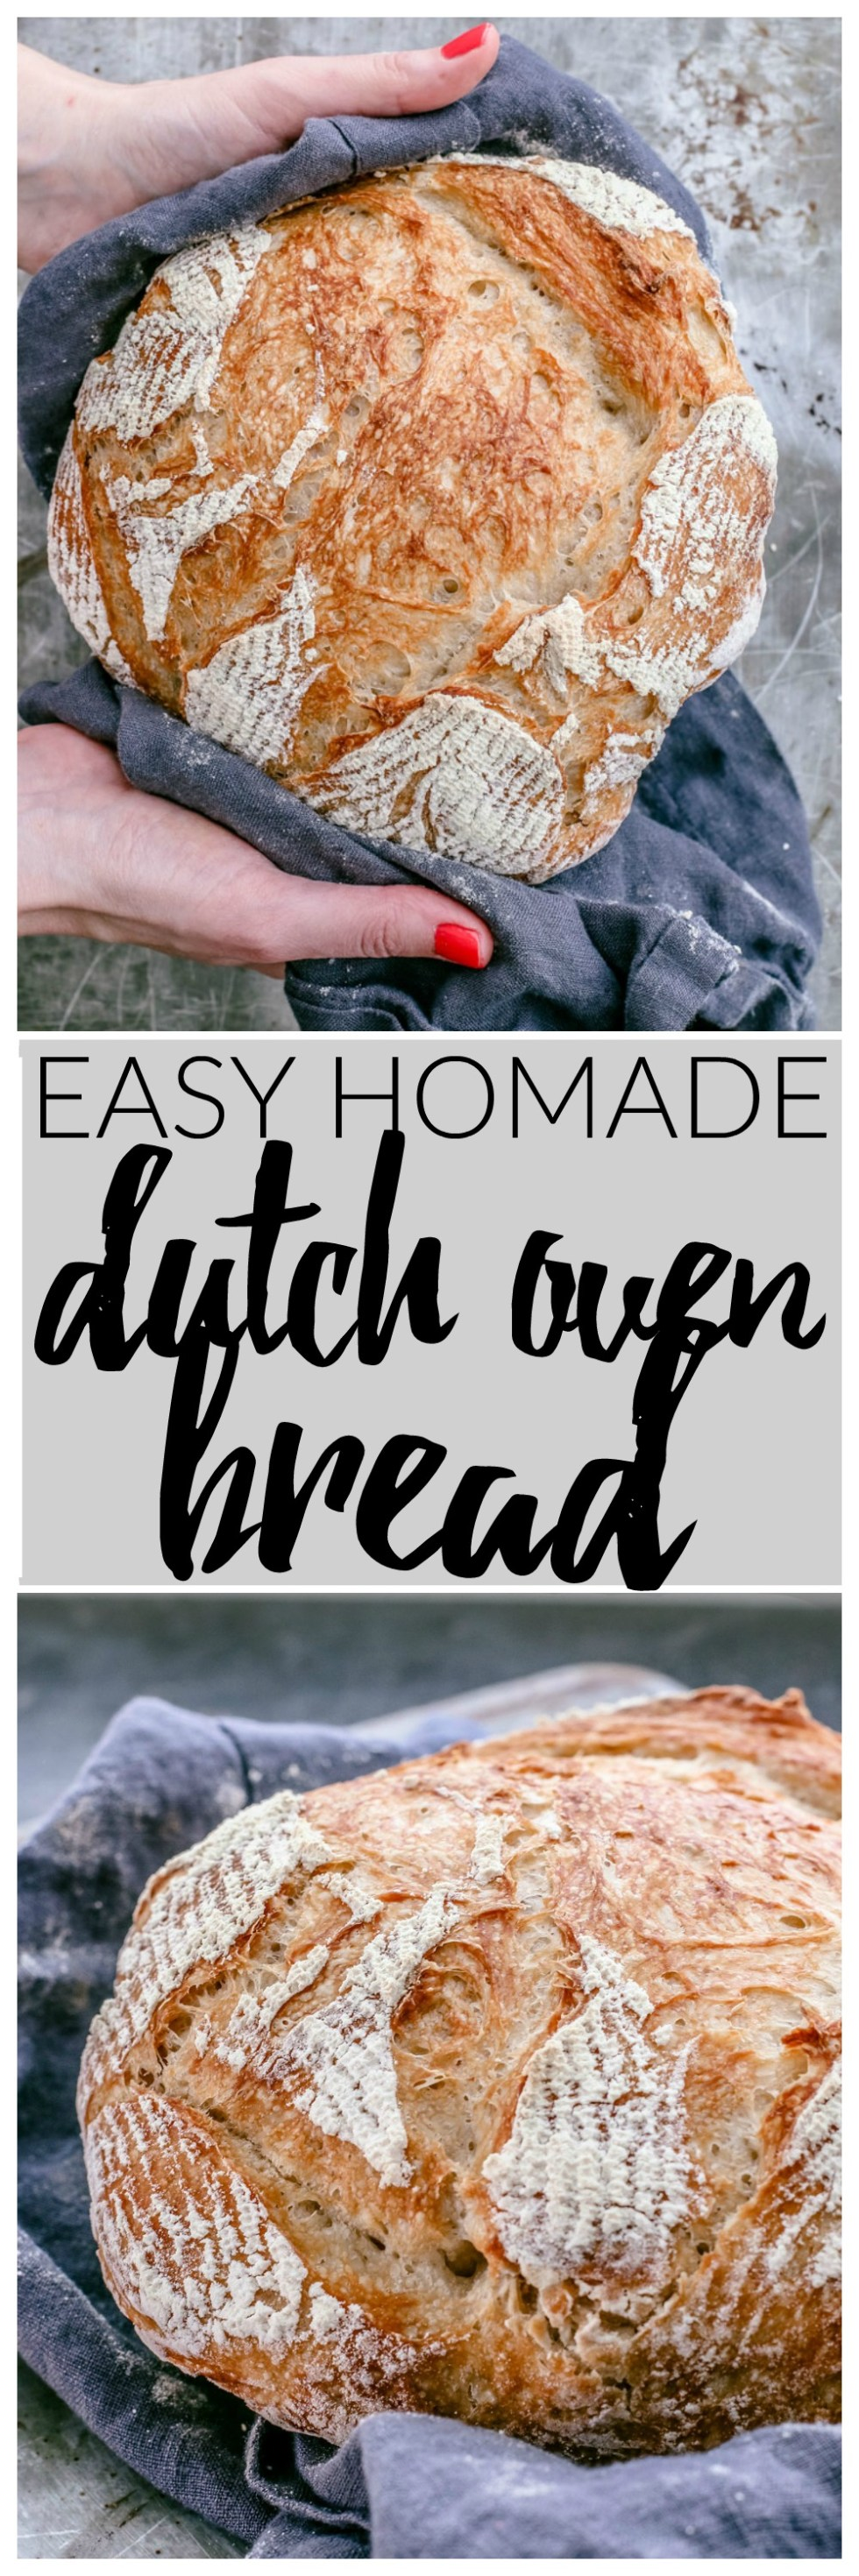 Easy Homemade Dutch Oven Bread | Killing Thyme — You'll get a gorgeous crackly golden brown crust encasing soft and pillowy bread every time.